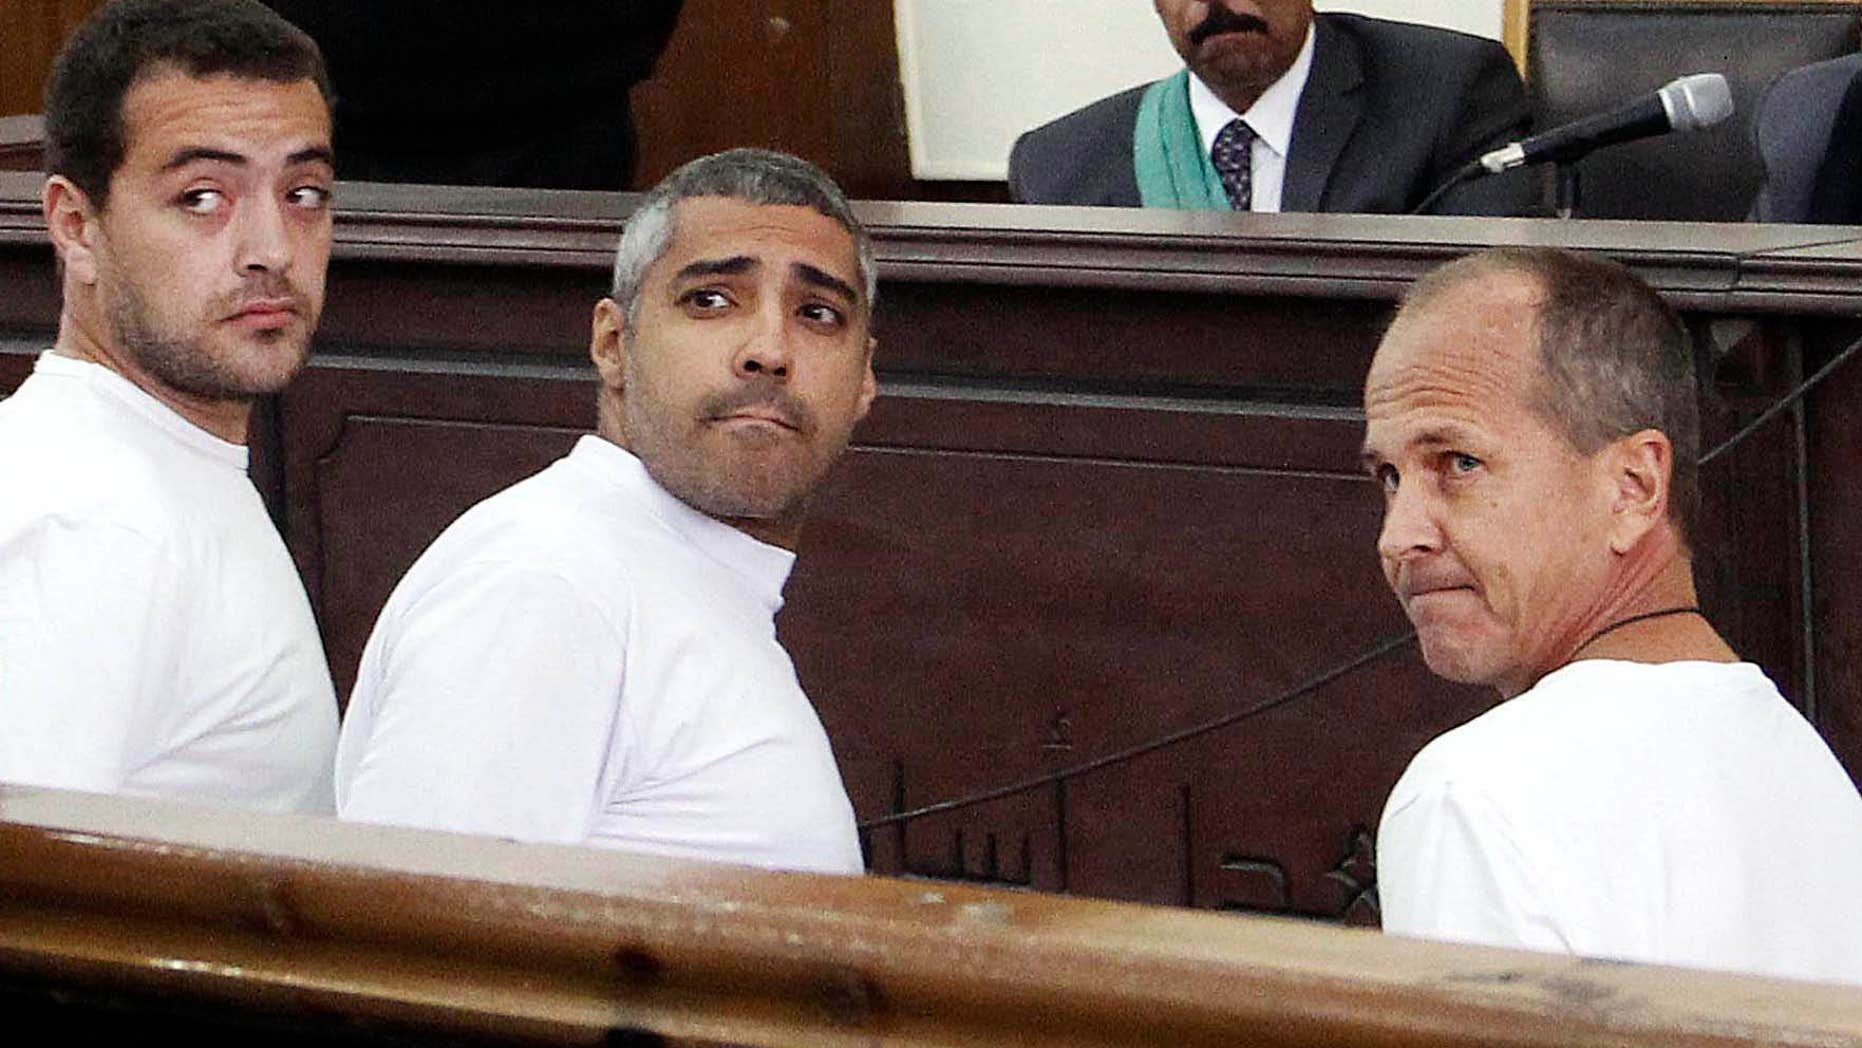 March 31, 2014:  Al-Jazeera English producer Baher Mohamed, left, Canadian-Egyptian acting Cairo bureau chief Mohammed Fahmy, center, and correspondent Peter Greste, right, appear in court along with several other defendants during their trial on terror charges, in Cairo.